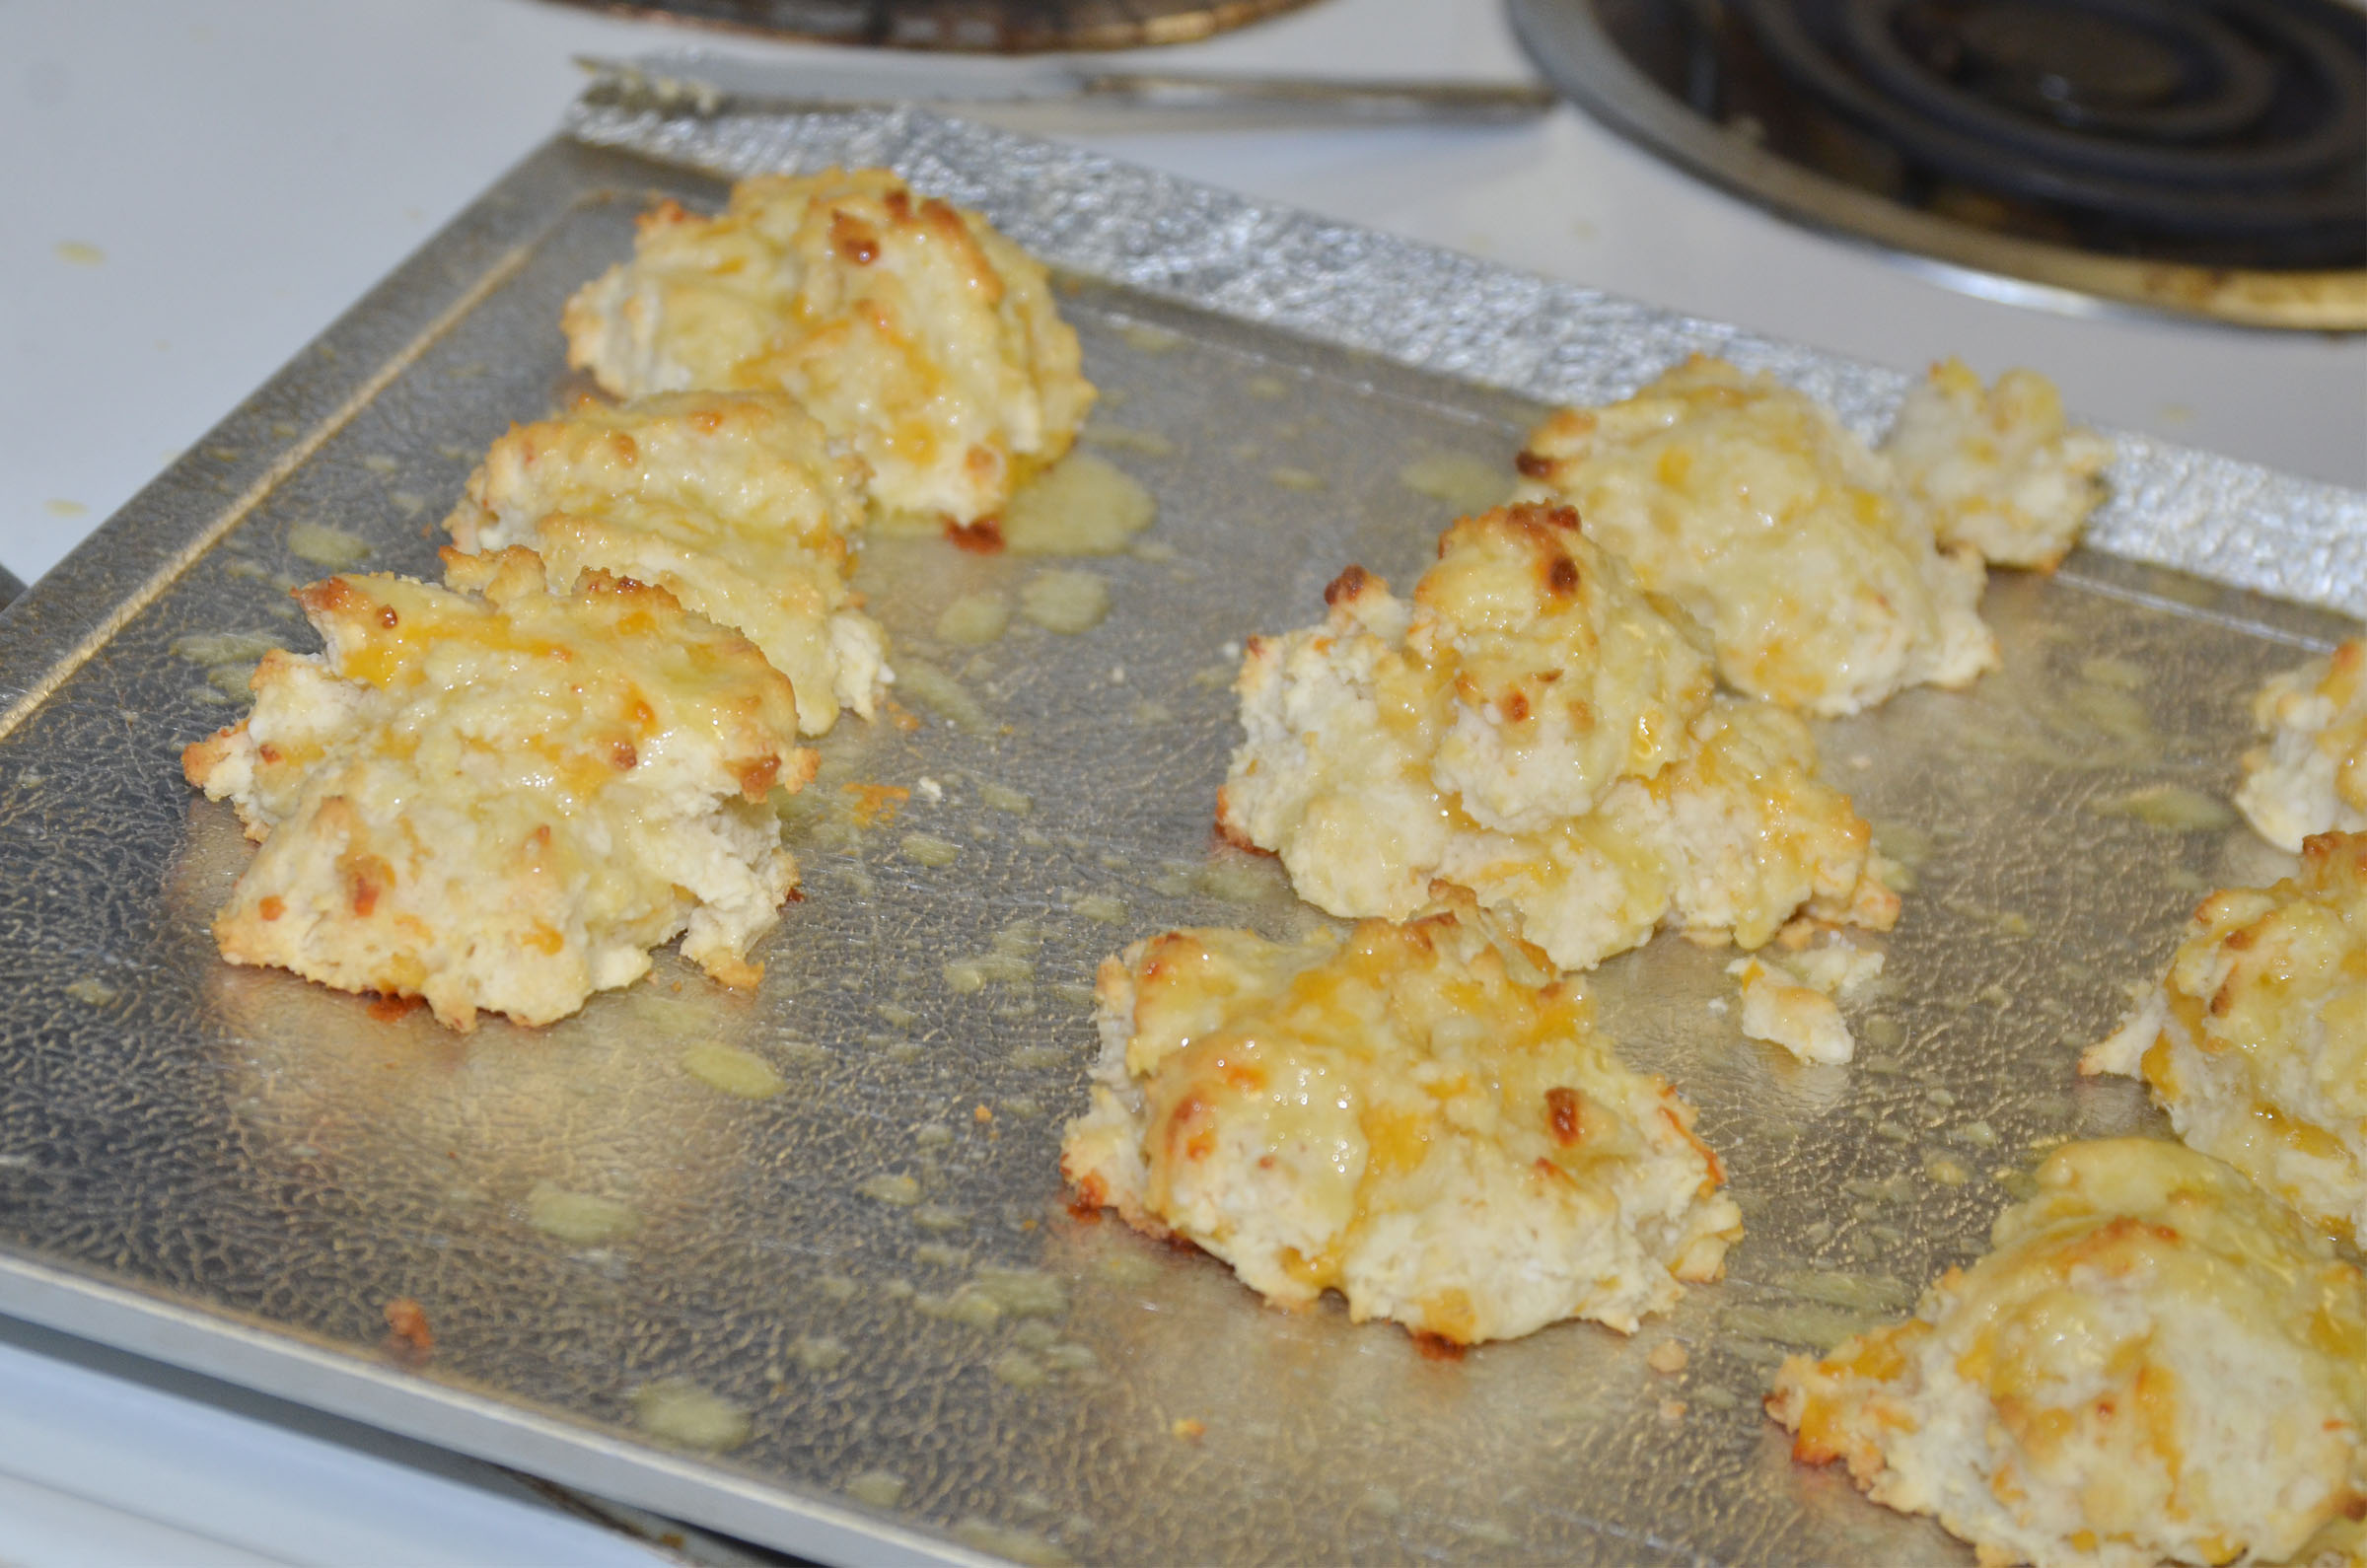 CHS students made these cheesy garlic biscuits in Deanna Campbell's class.